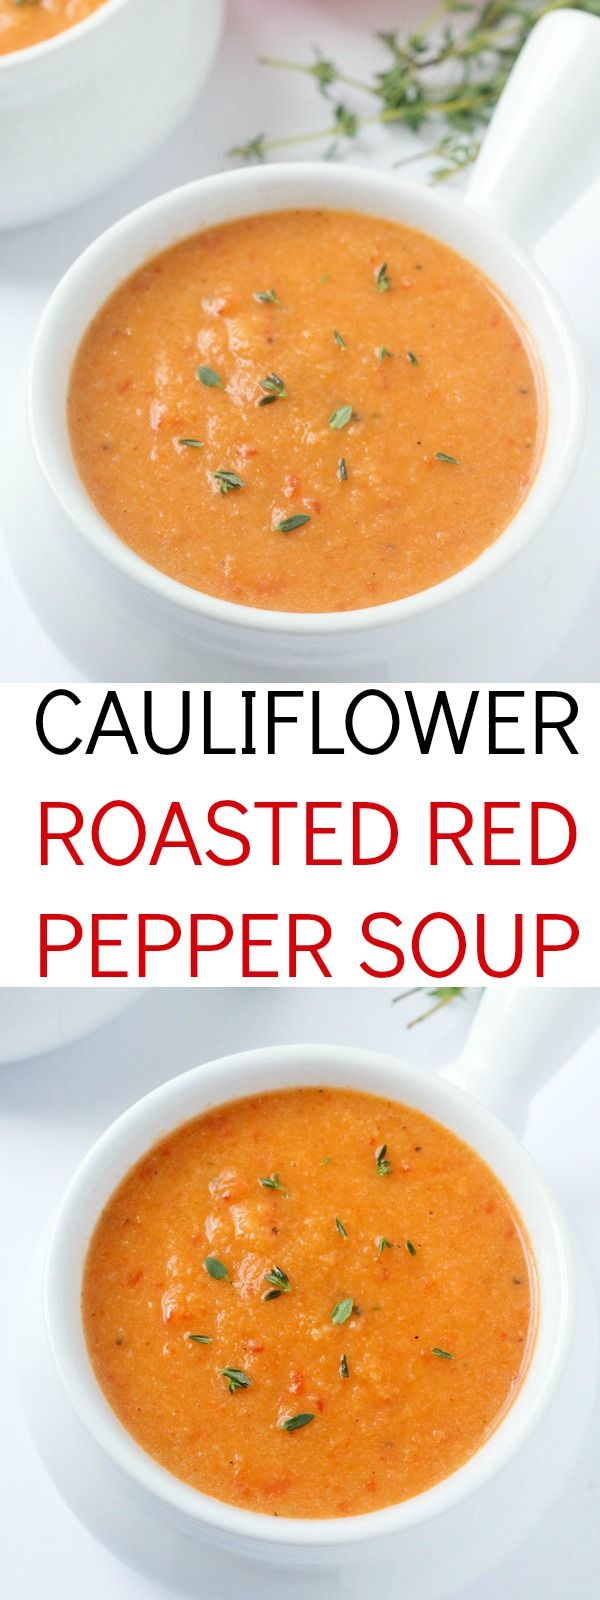 Cauliflower Roasted Red Pepper Soup - This will be your new favorite soup - it's ours!